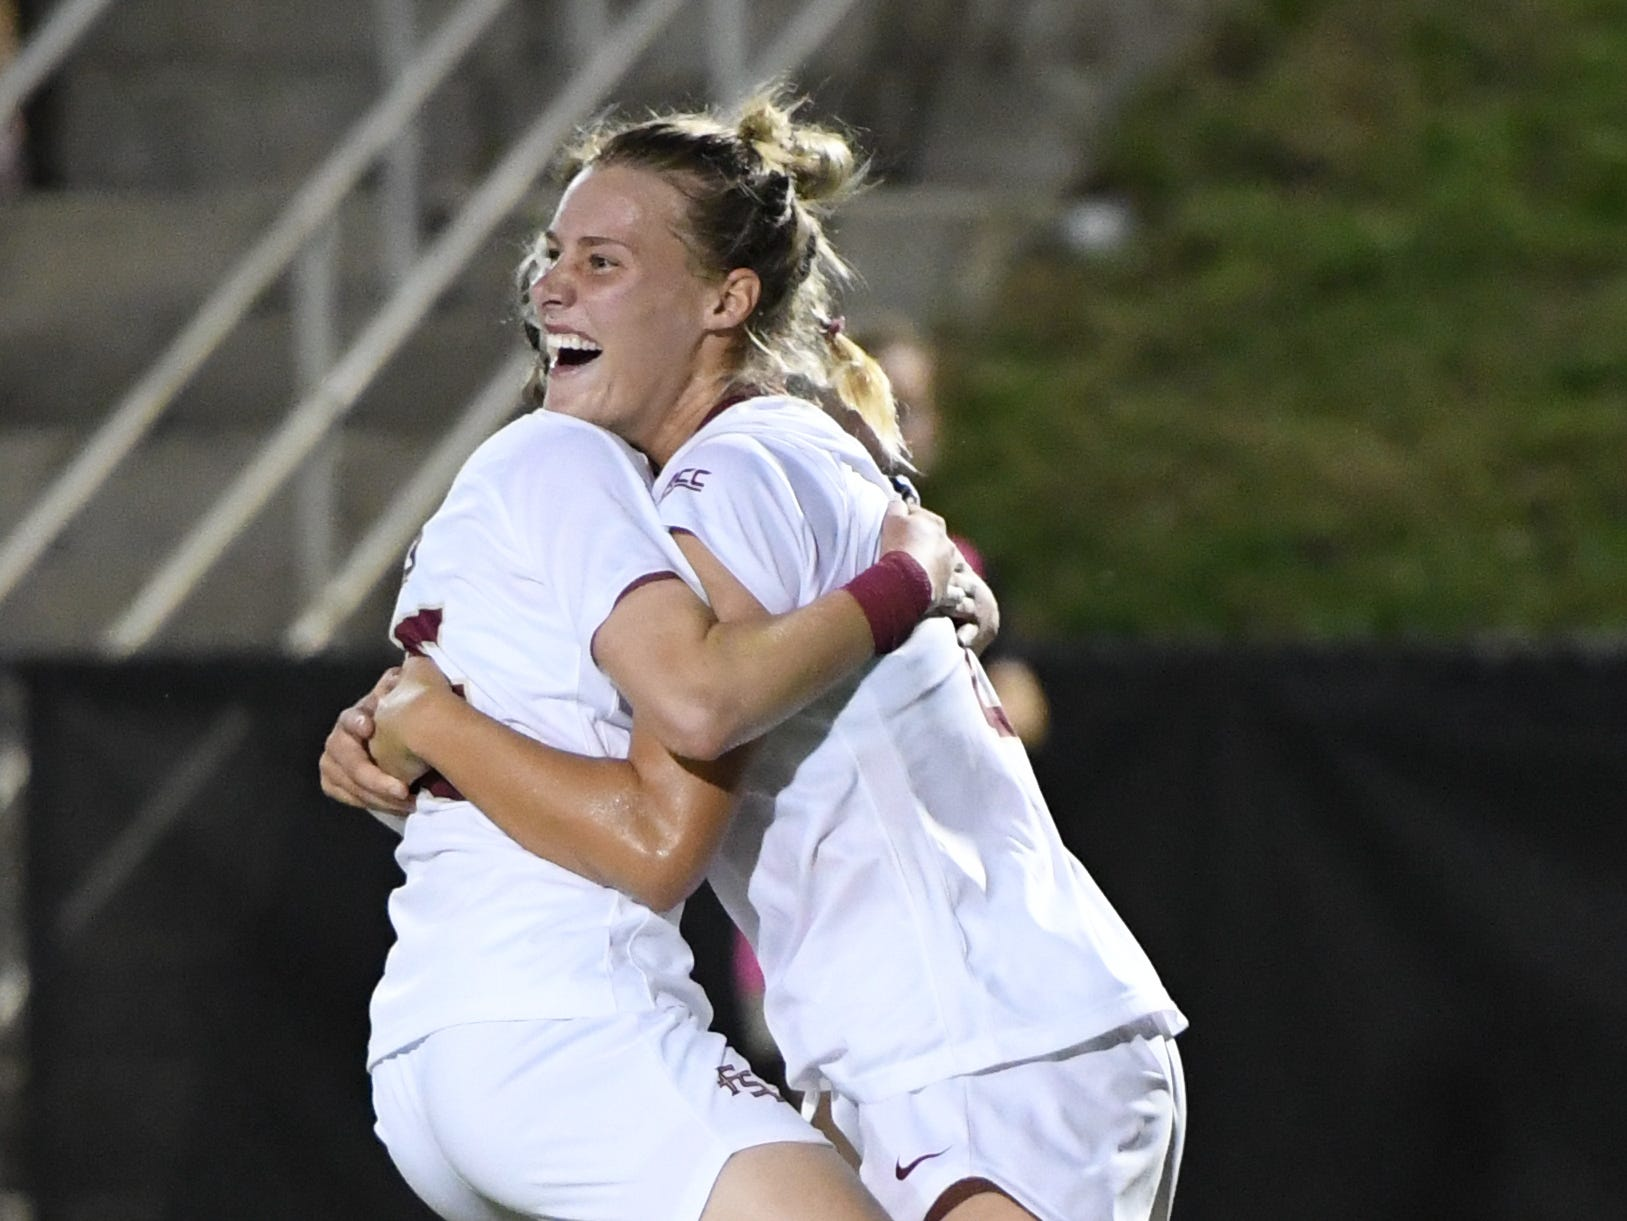 FSU redshirt sophomore forward Kristen McFarland (20) celebrating with her teammate after she scored FSU's winning goal during the second half of FSU's game against Florida on friday night at the Seminole Soccer Complex.